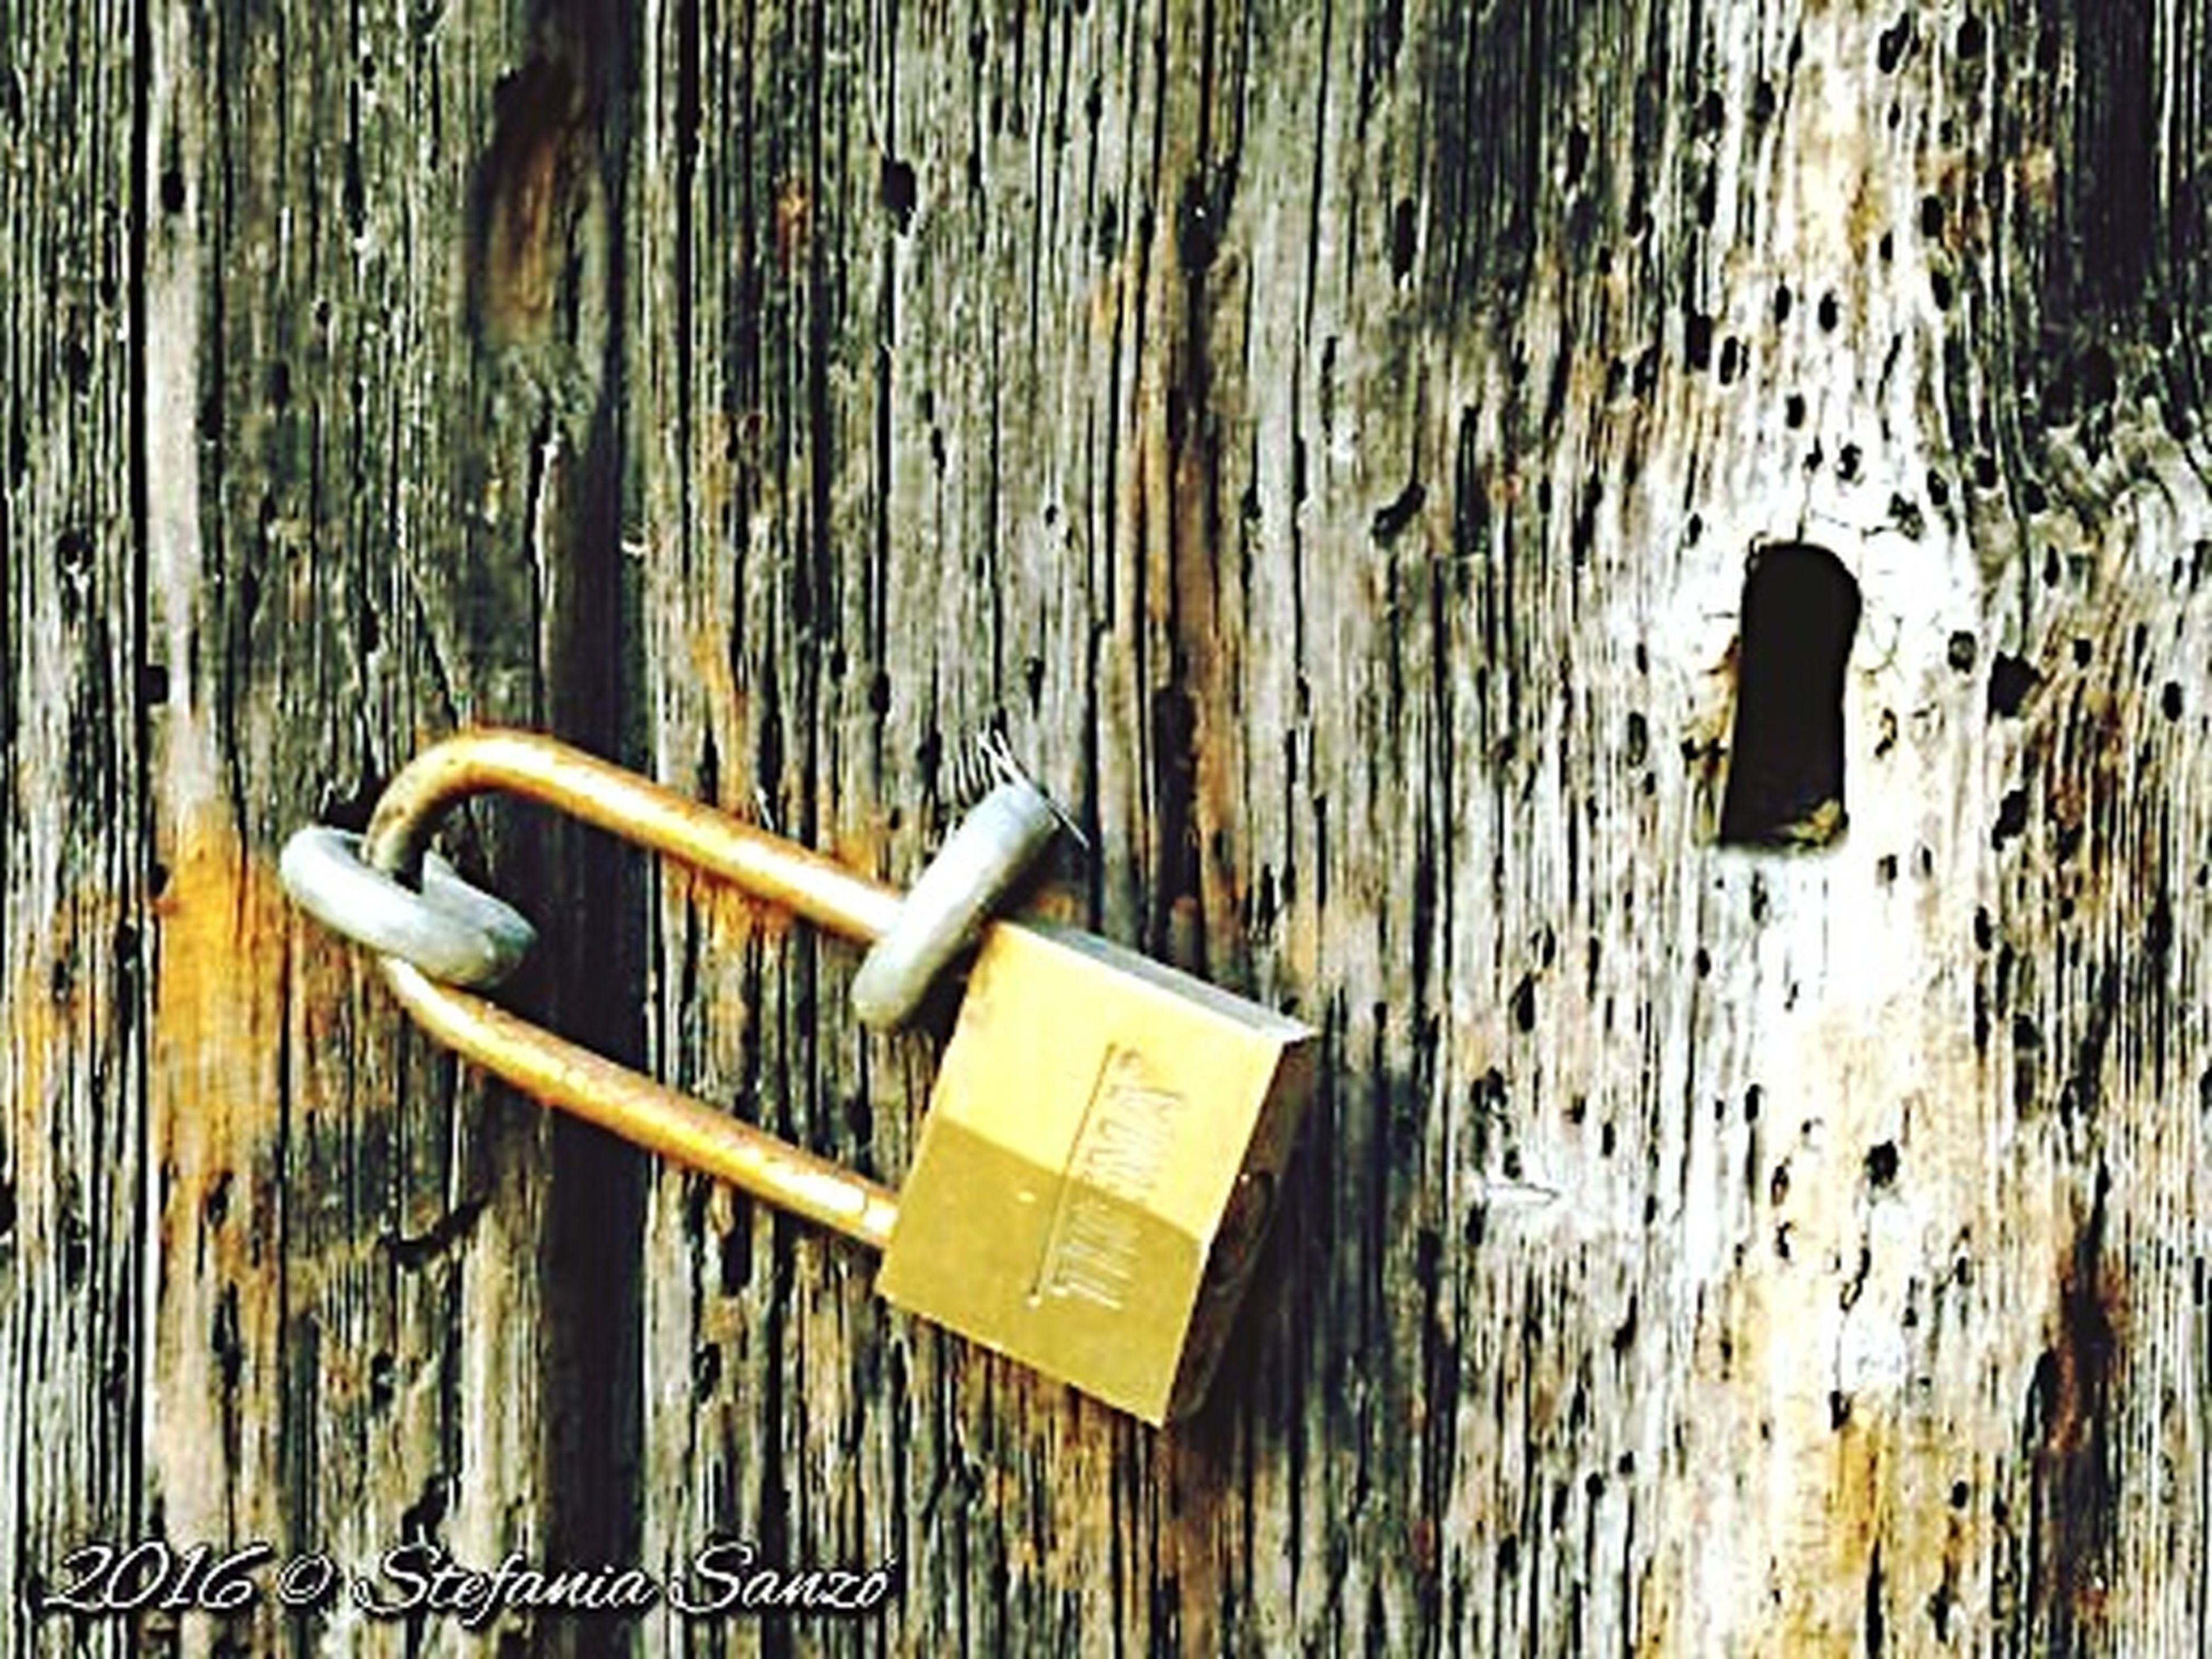 padlock, no people, close-up, lock, day, attached, outdoors, architecture, water